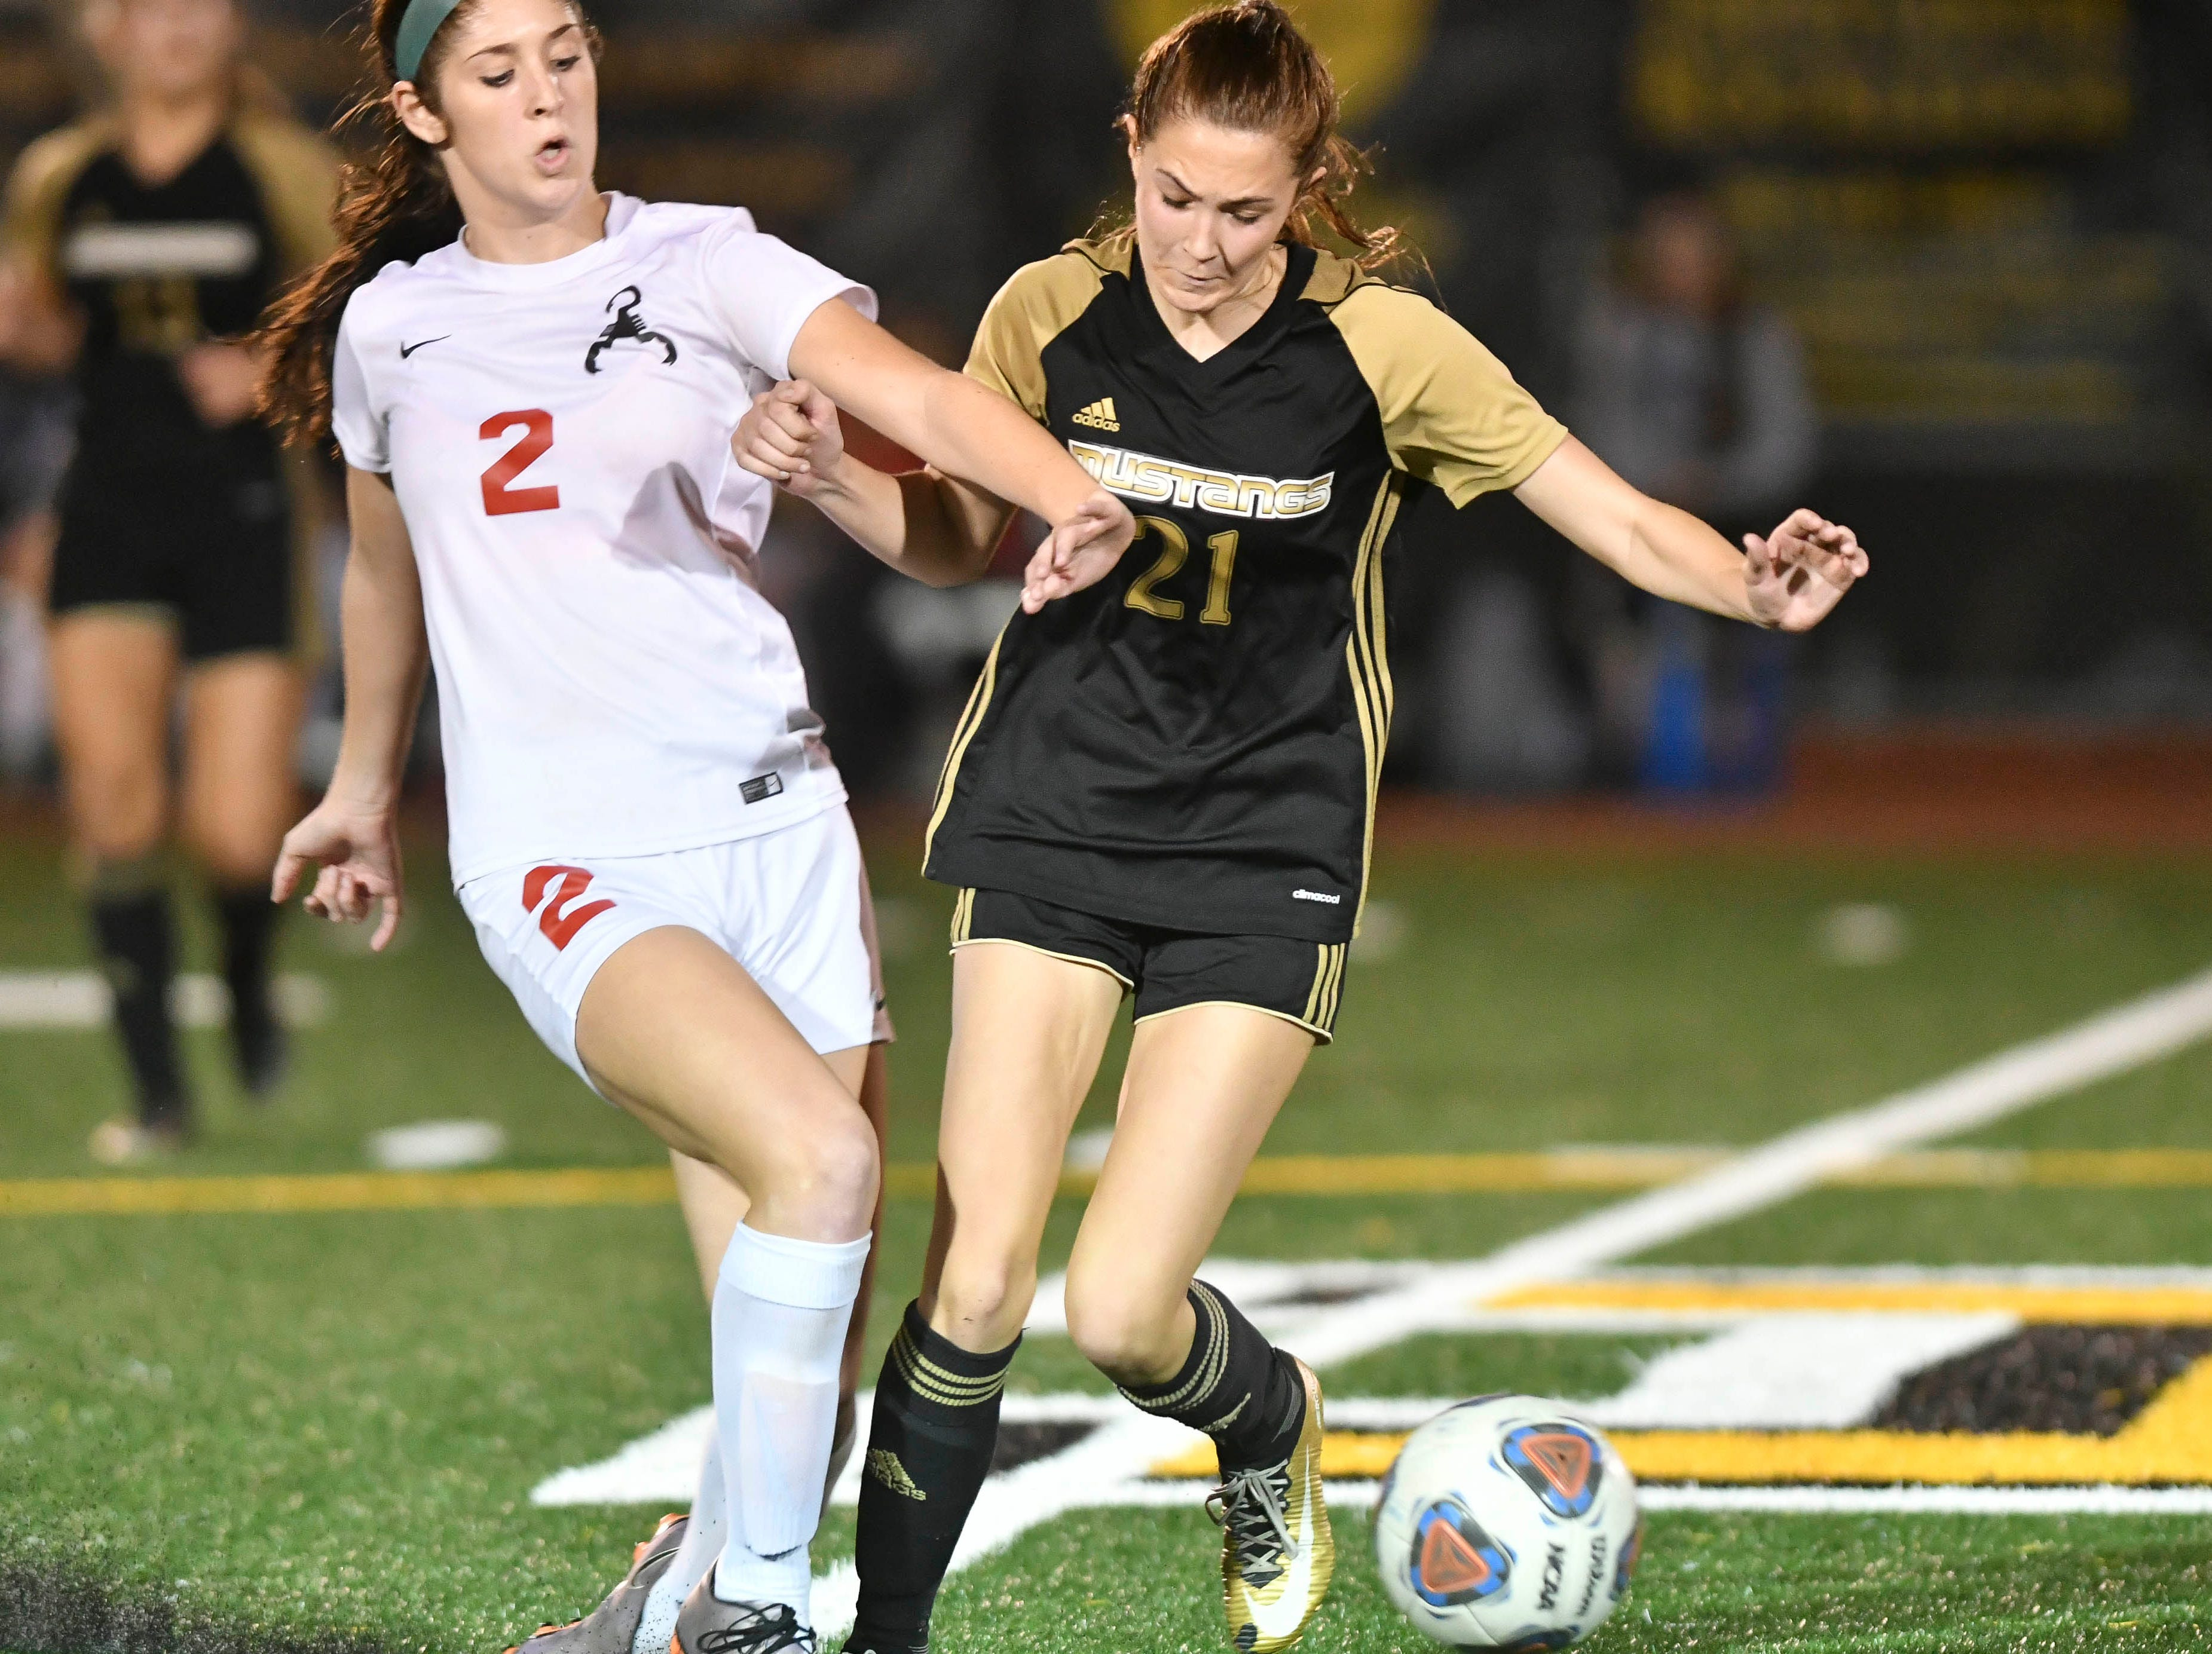 Abbey Beres of Satellite and Ashleigh Sweat of Merritt Island get tangled up during Friday's Class 3A regional semifinal.